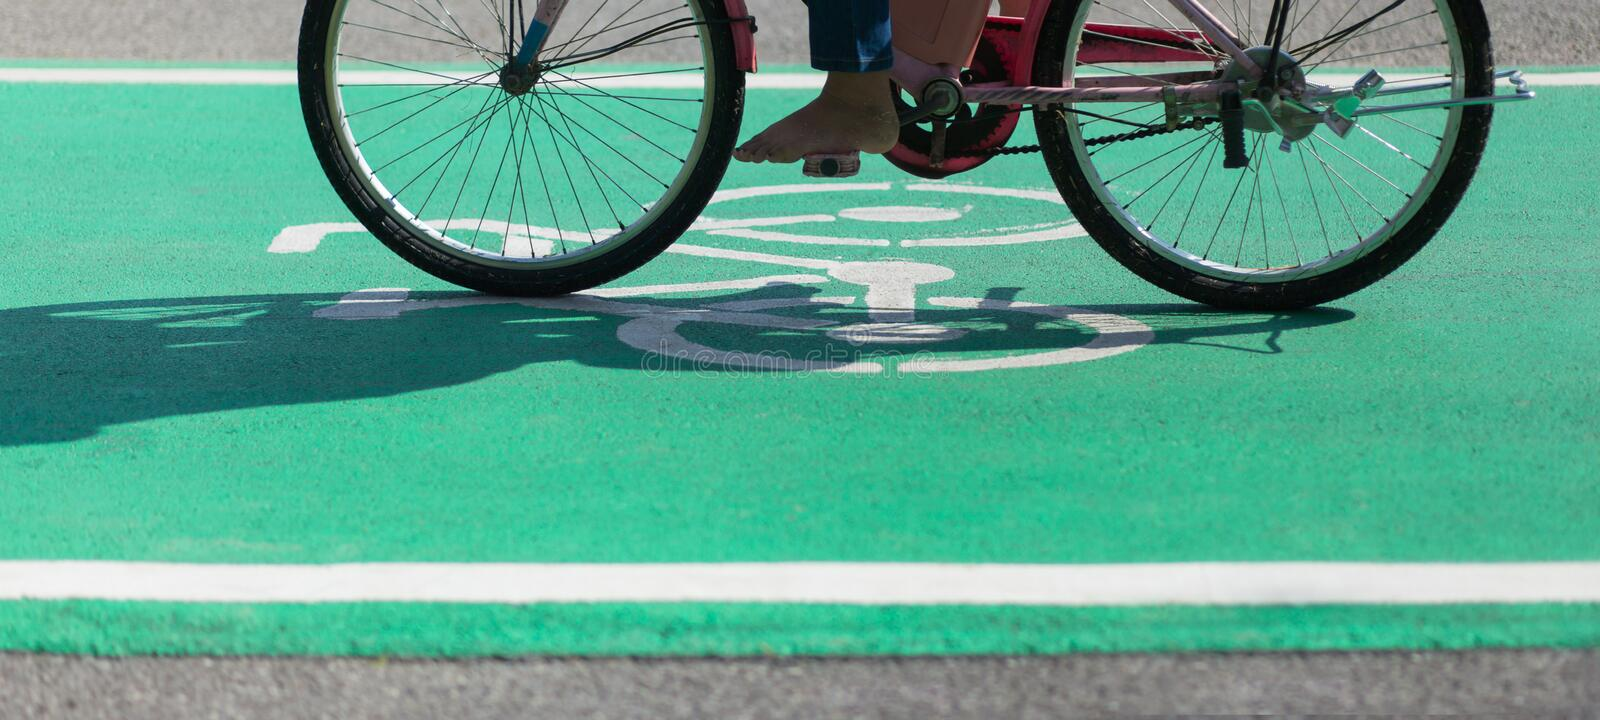 Barefoot Cycling on Bike Path Green Lane with the Bikeway Symbol stock images